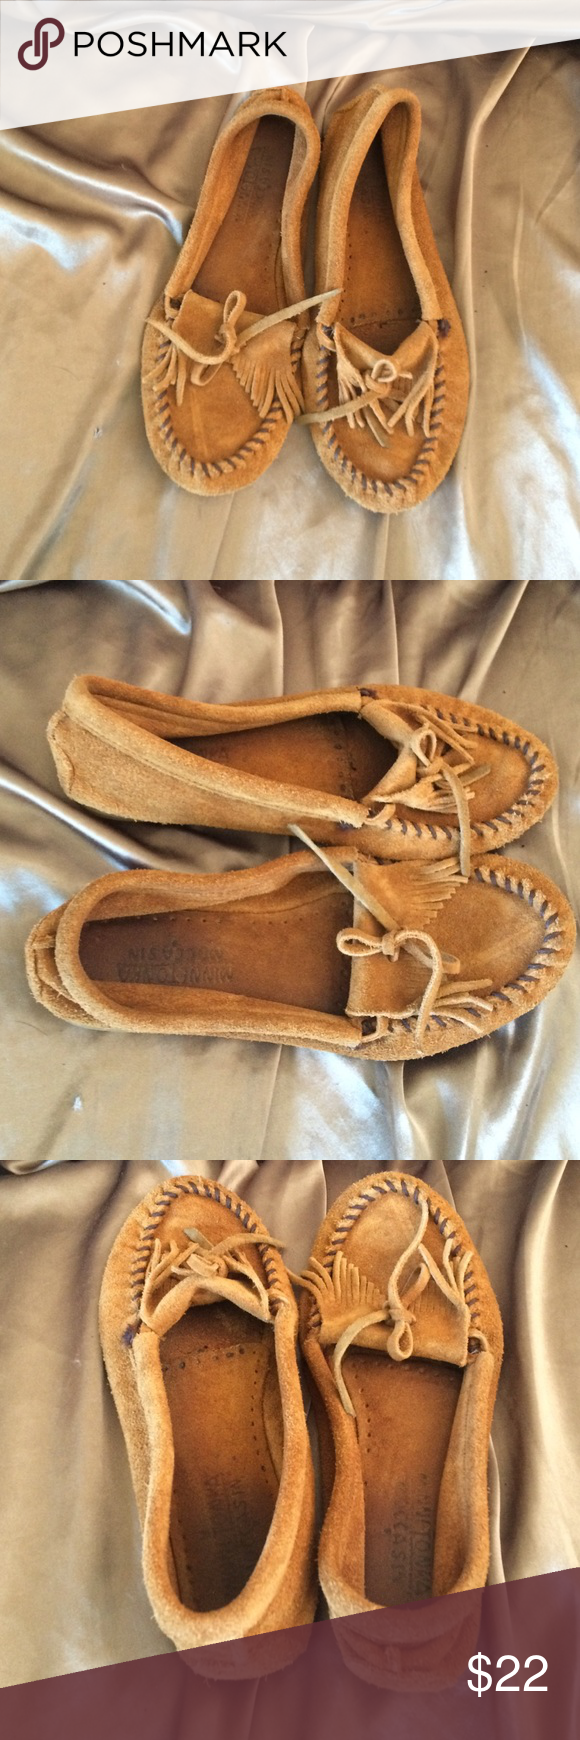 Minnetonka moccasins 7 Cute moccasins. Pre loved. Do show some wear and have a few marks. Minnetonka Shoes Moccasins